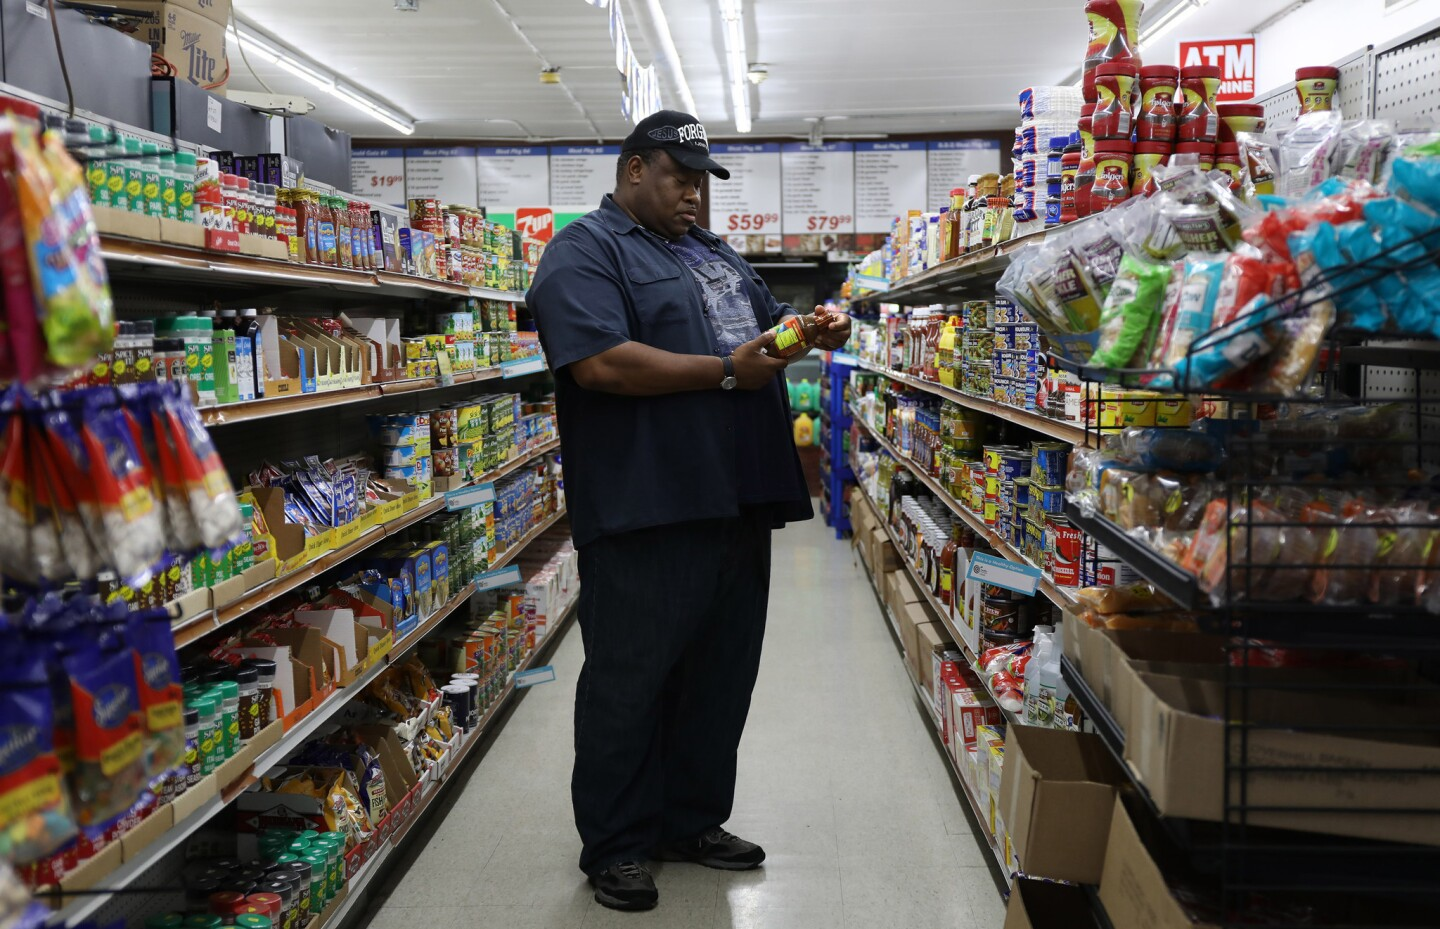 Carey Grimmage, of Calumet Park, shops June 16, 2017, at Jordan Food Mart in Calumet Park. The store carries frozen meats, not fresh, but owner Luay Madain said he may bring back fresh meat if residents demand it, now that Ultra Foods has closed its doors in Calumet Park.